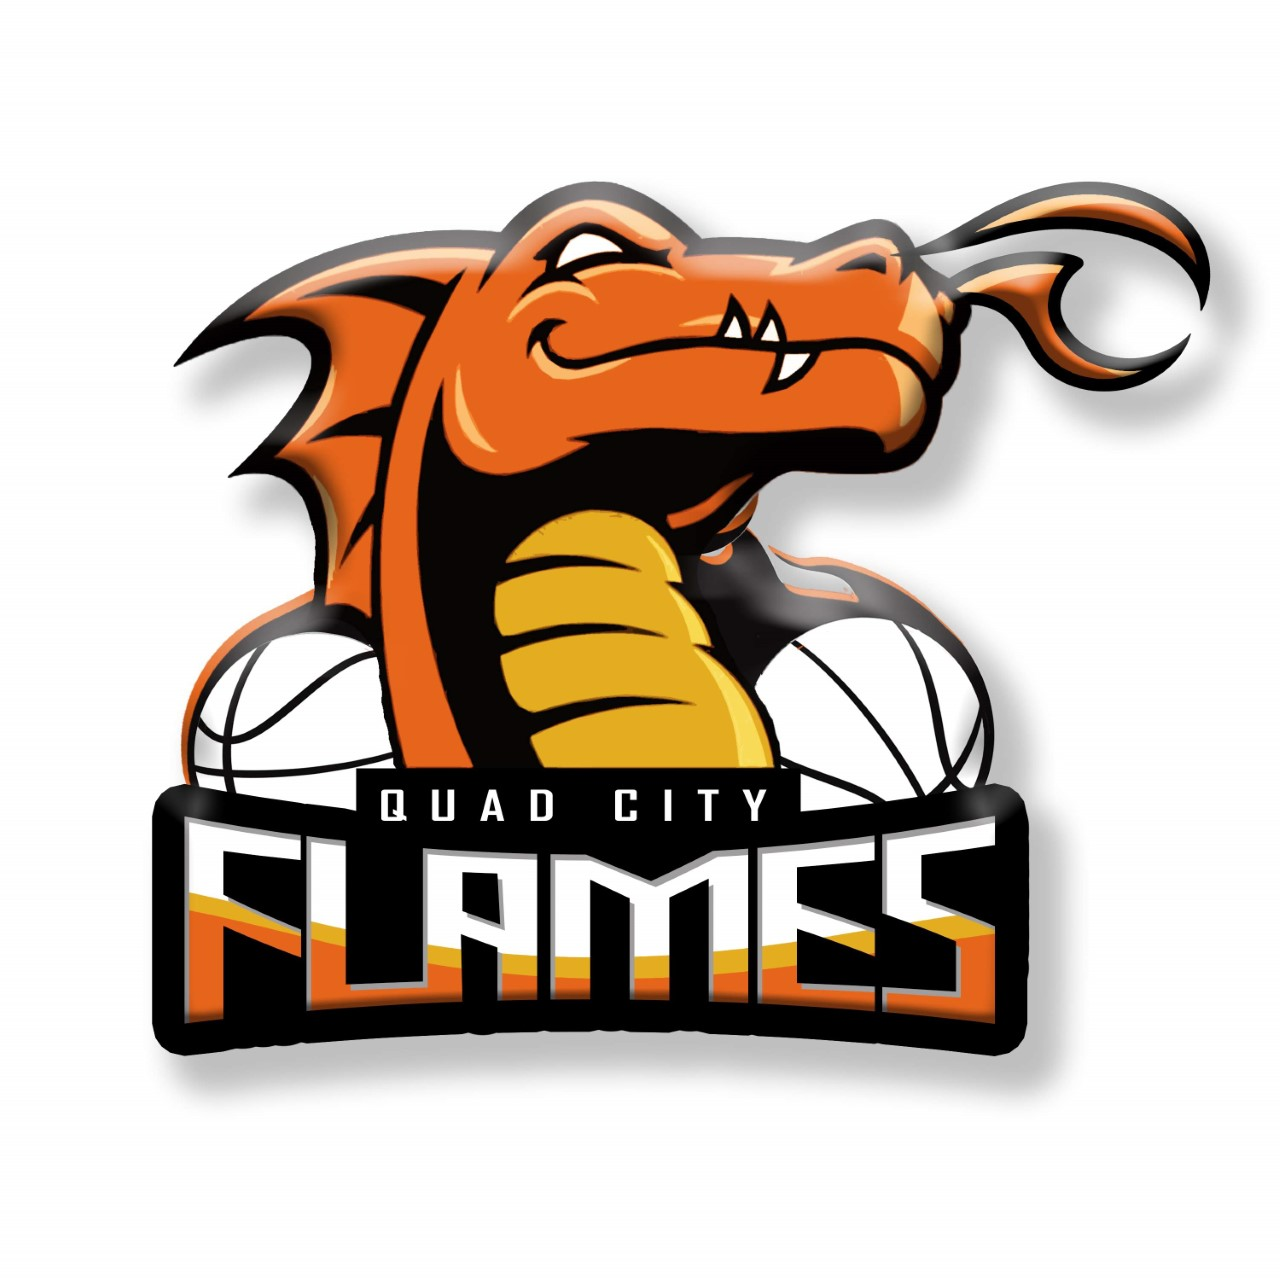 Quad City Flames